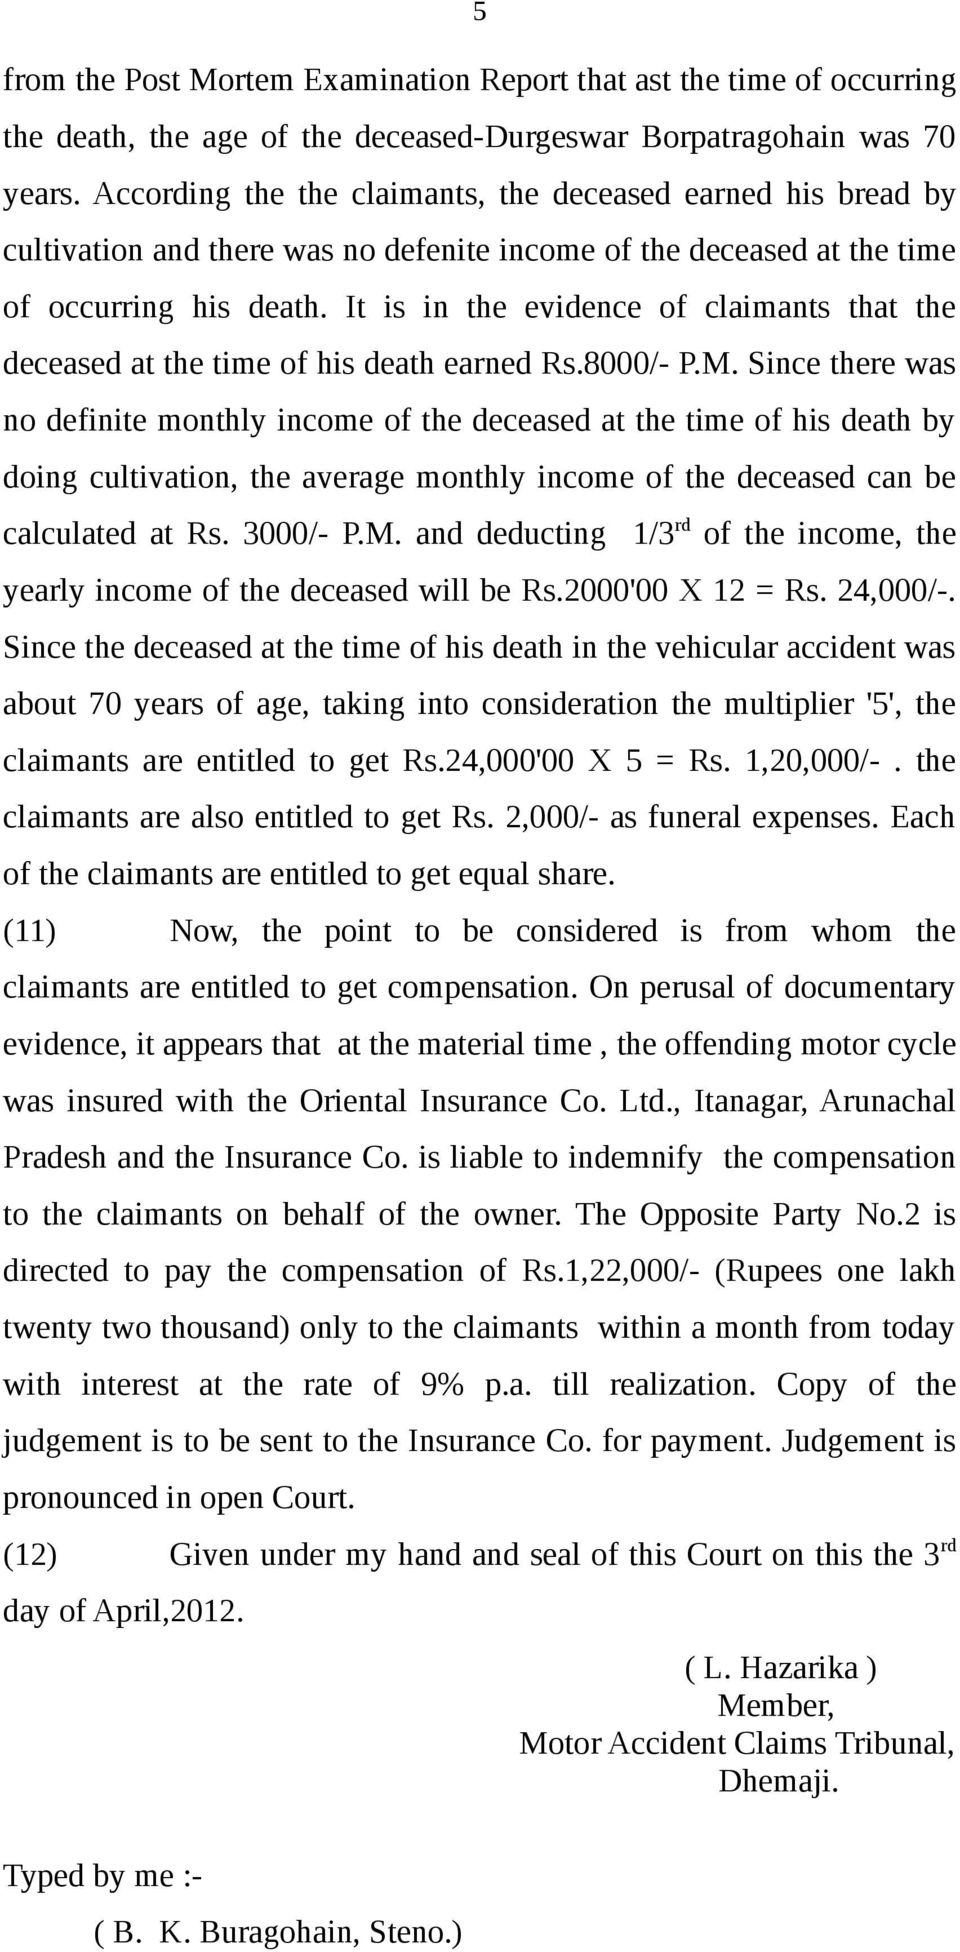 It is in the evidence of claimants that the deceased at the time of his death earned Rs.8000/- P.M.